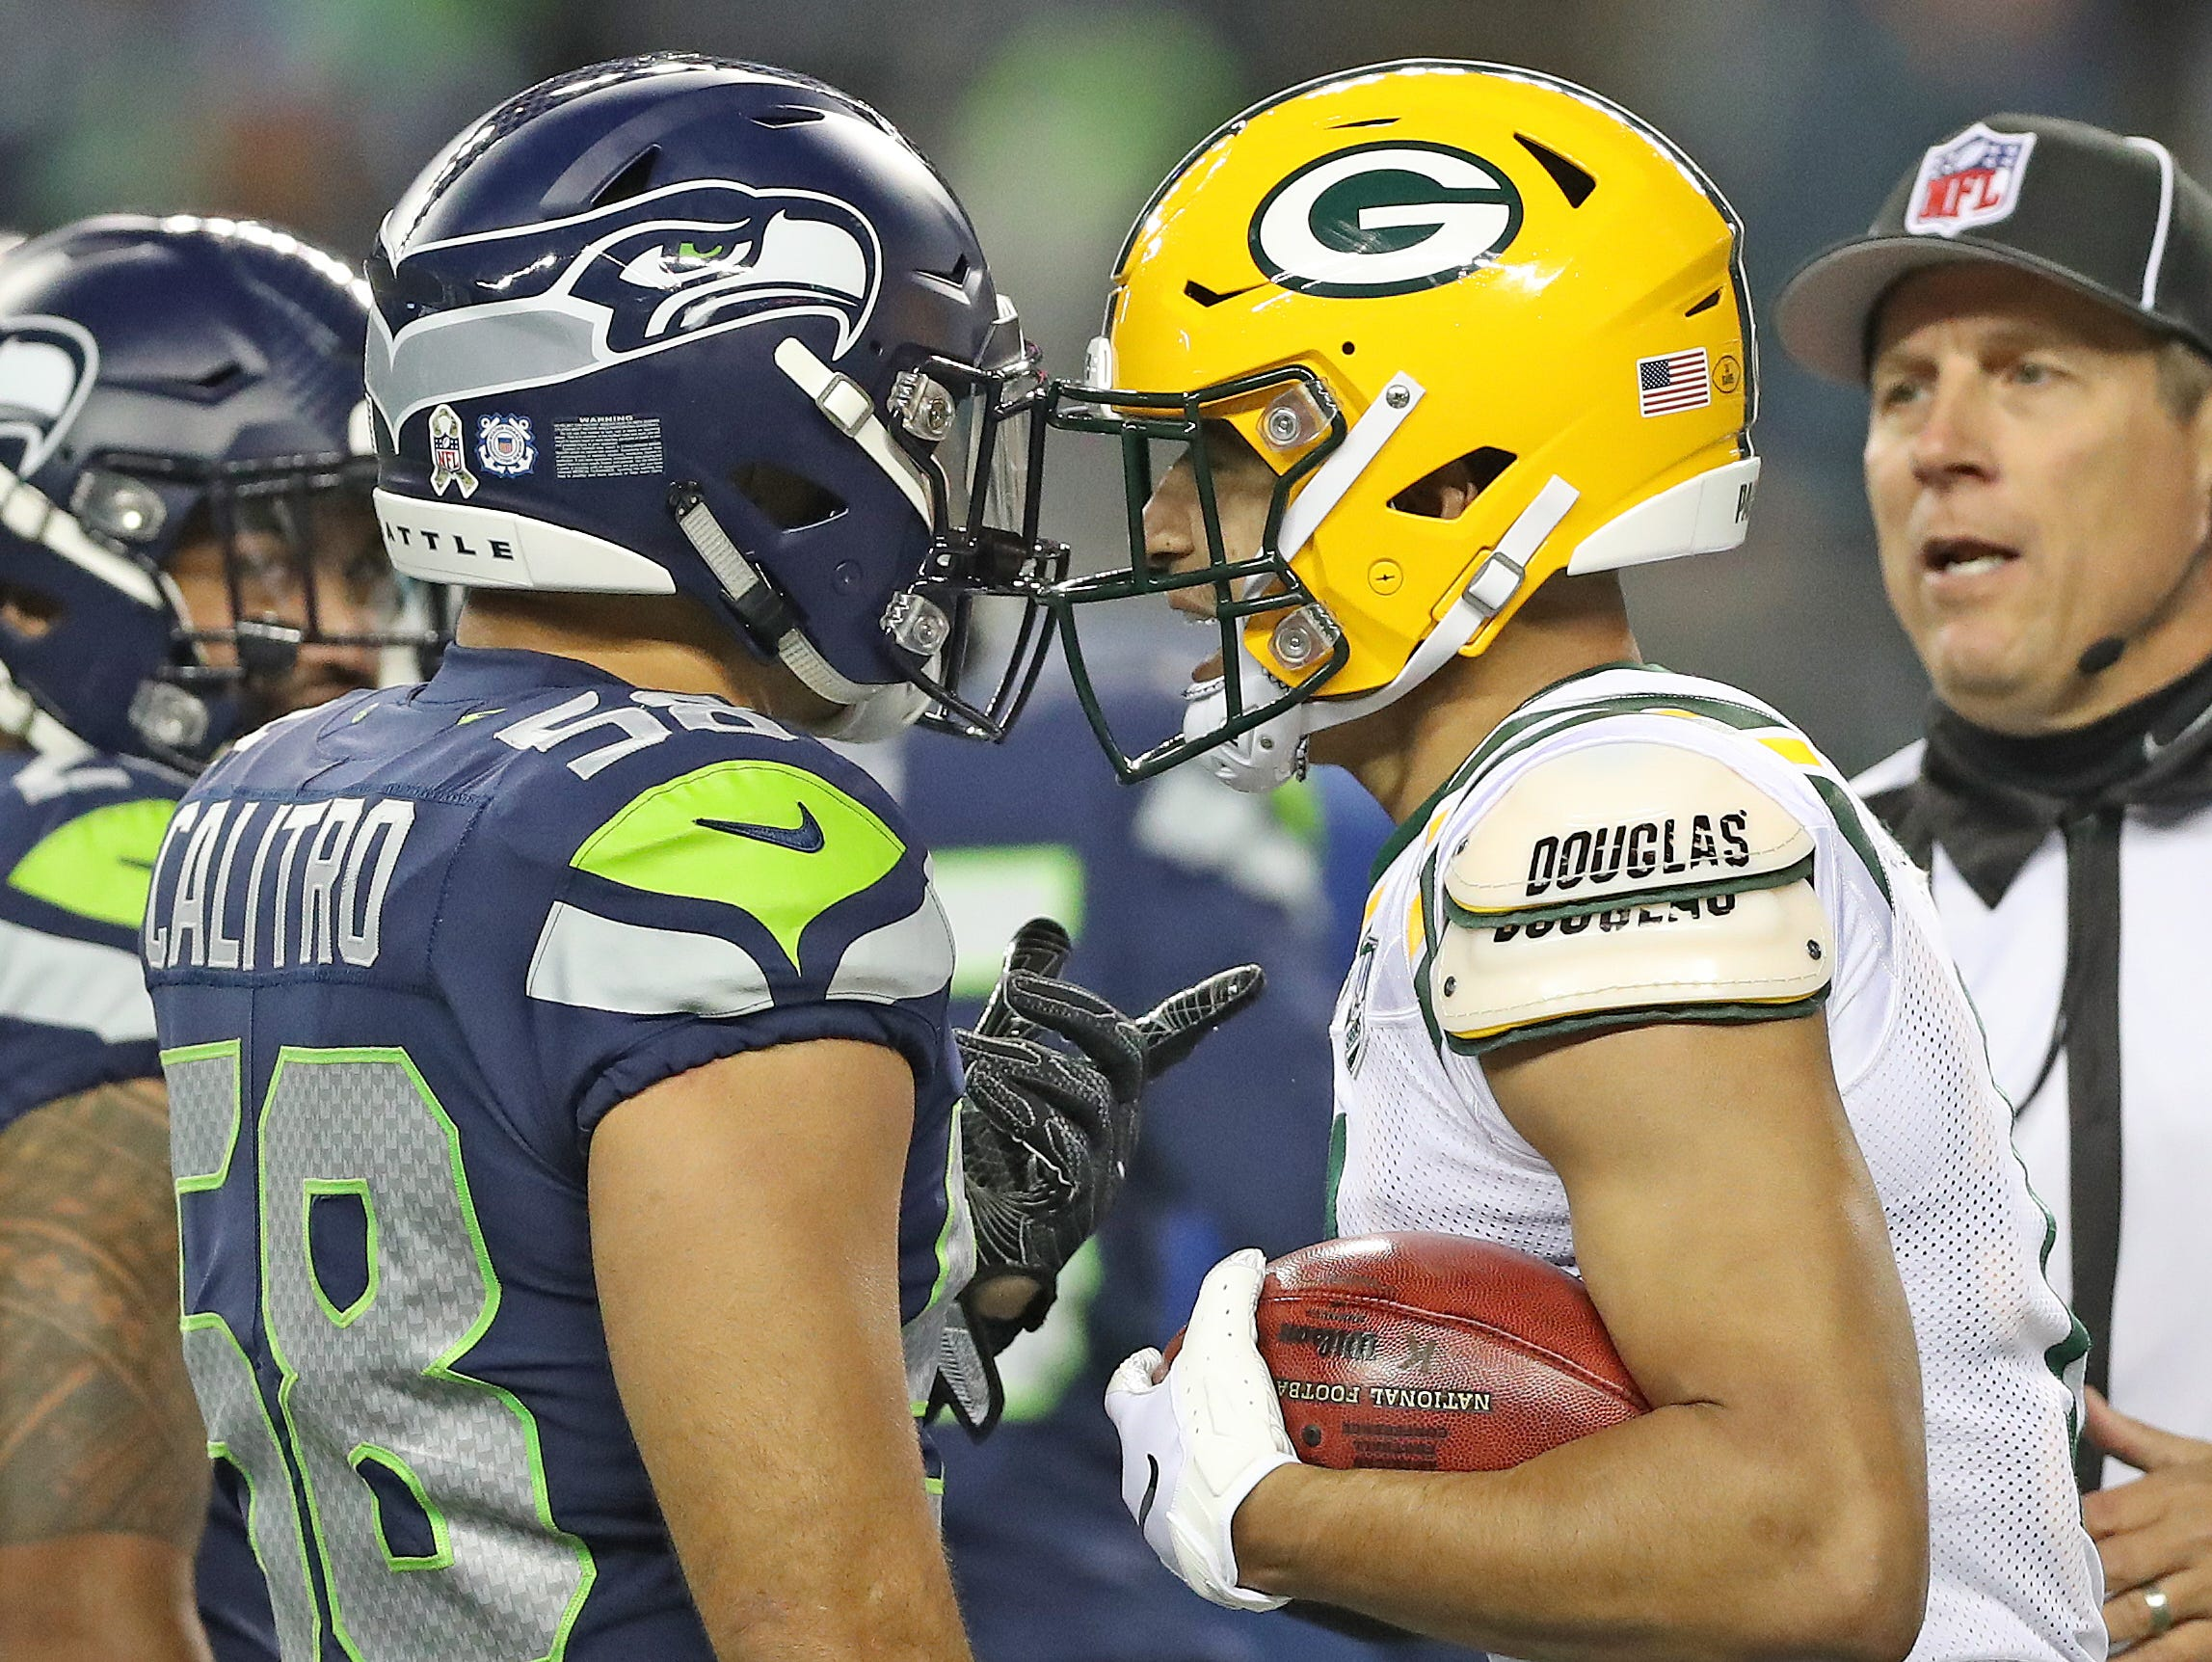 Green Bay Packers wide receiver Trevor Davis (11) confronts outside linebacker Austin Calitro (58) after a punt return against the Seattle Seahawks at CenturyLink Field Thursday, November 15, 2018 in Seattle, WA. Jim Matthews/USA TODAY NETWORK-Wis